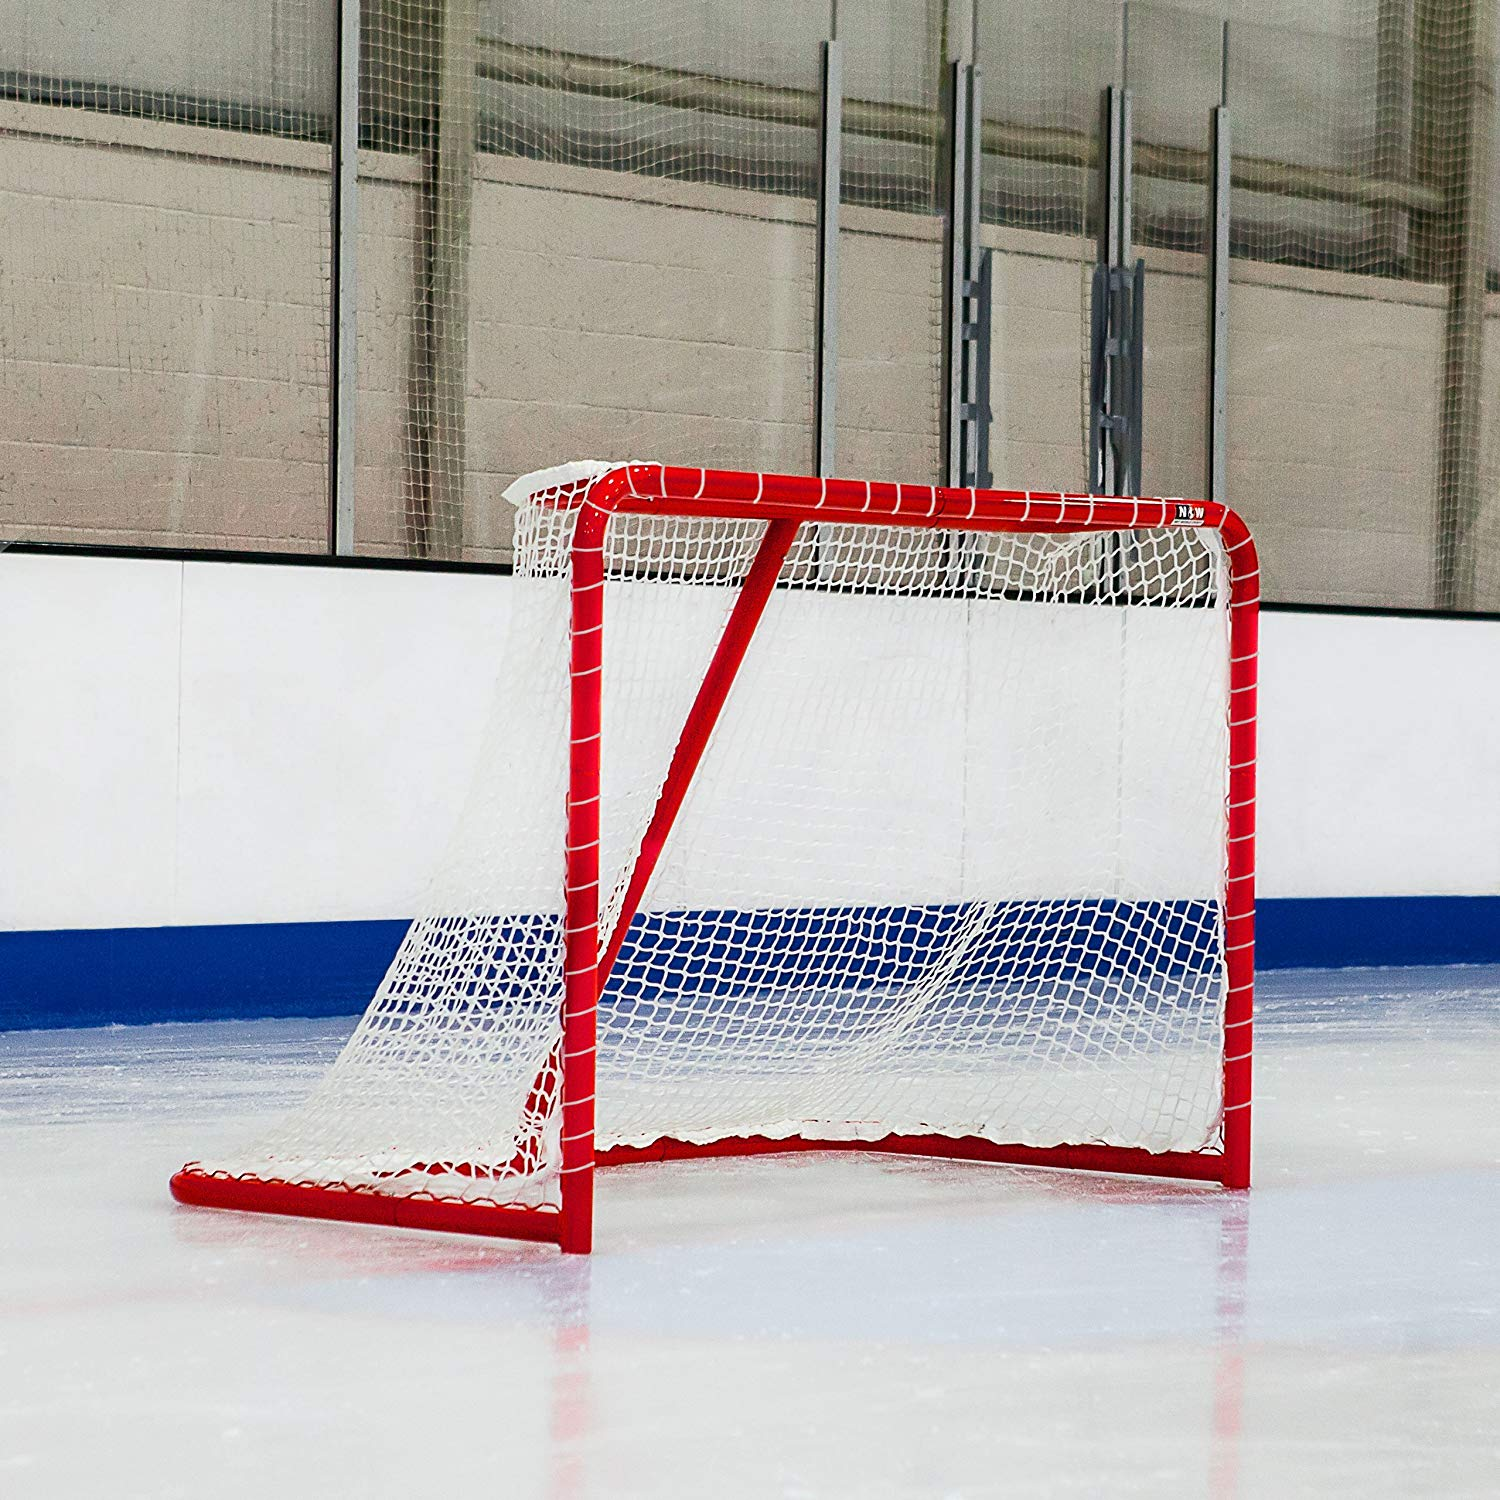 c26cc171265 Get Quotations · Regulation Ice Hockey Goal - Hockey Goal For All Ages -  Regulation Size   Color